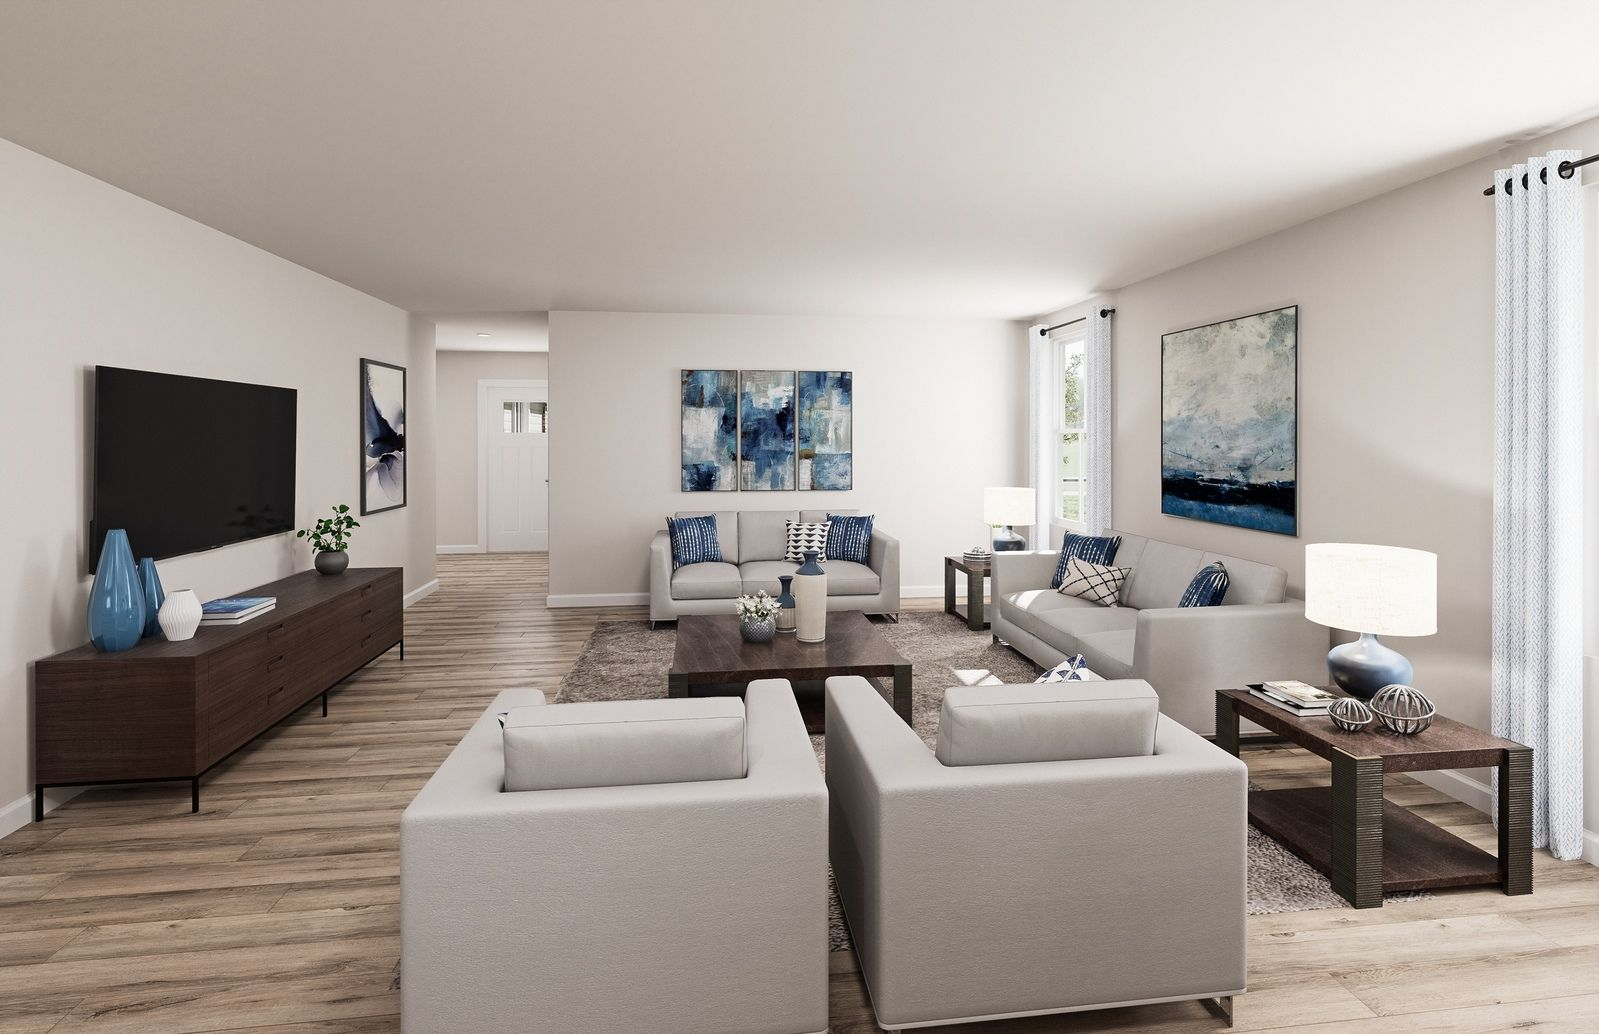 Living Area featured in the Eden Cay By Ryan Homes in Cincinnati, OH